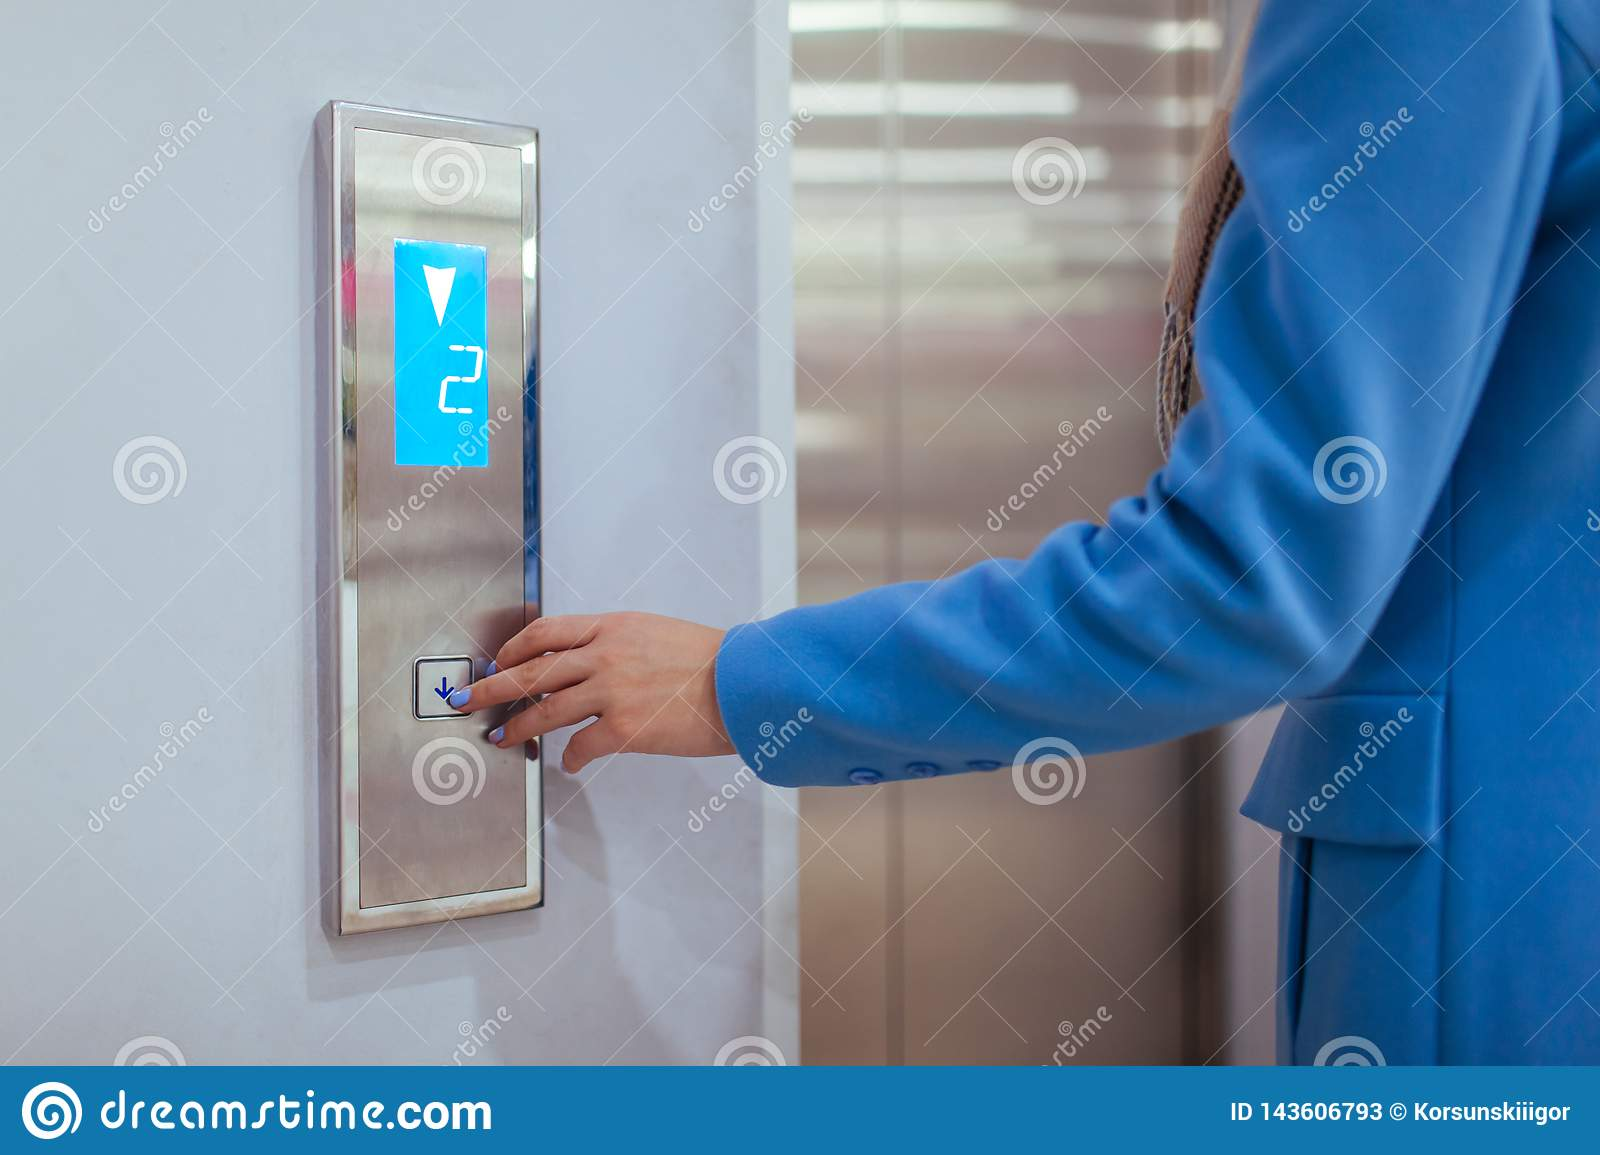 Woman Standing In Elevator And Pressing Button in shopping center